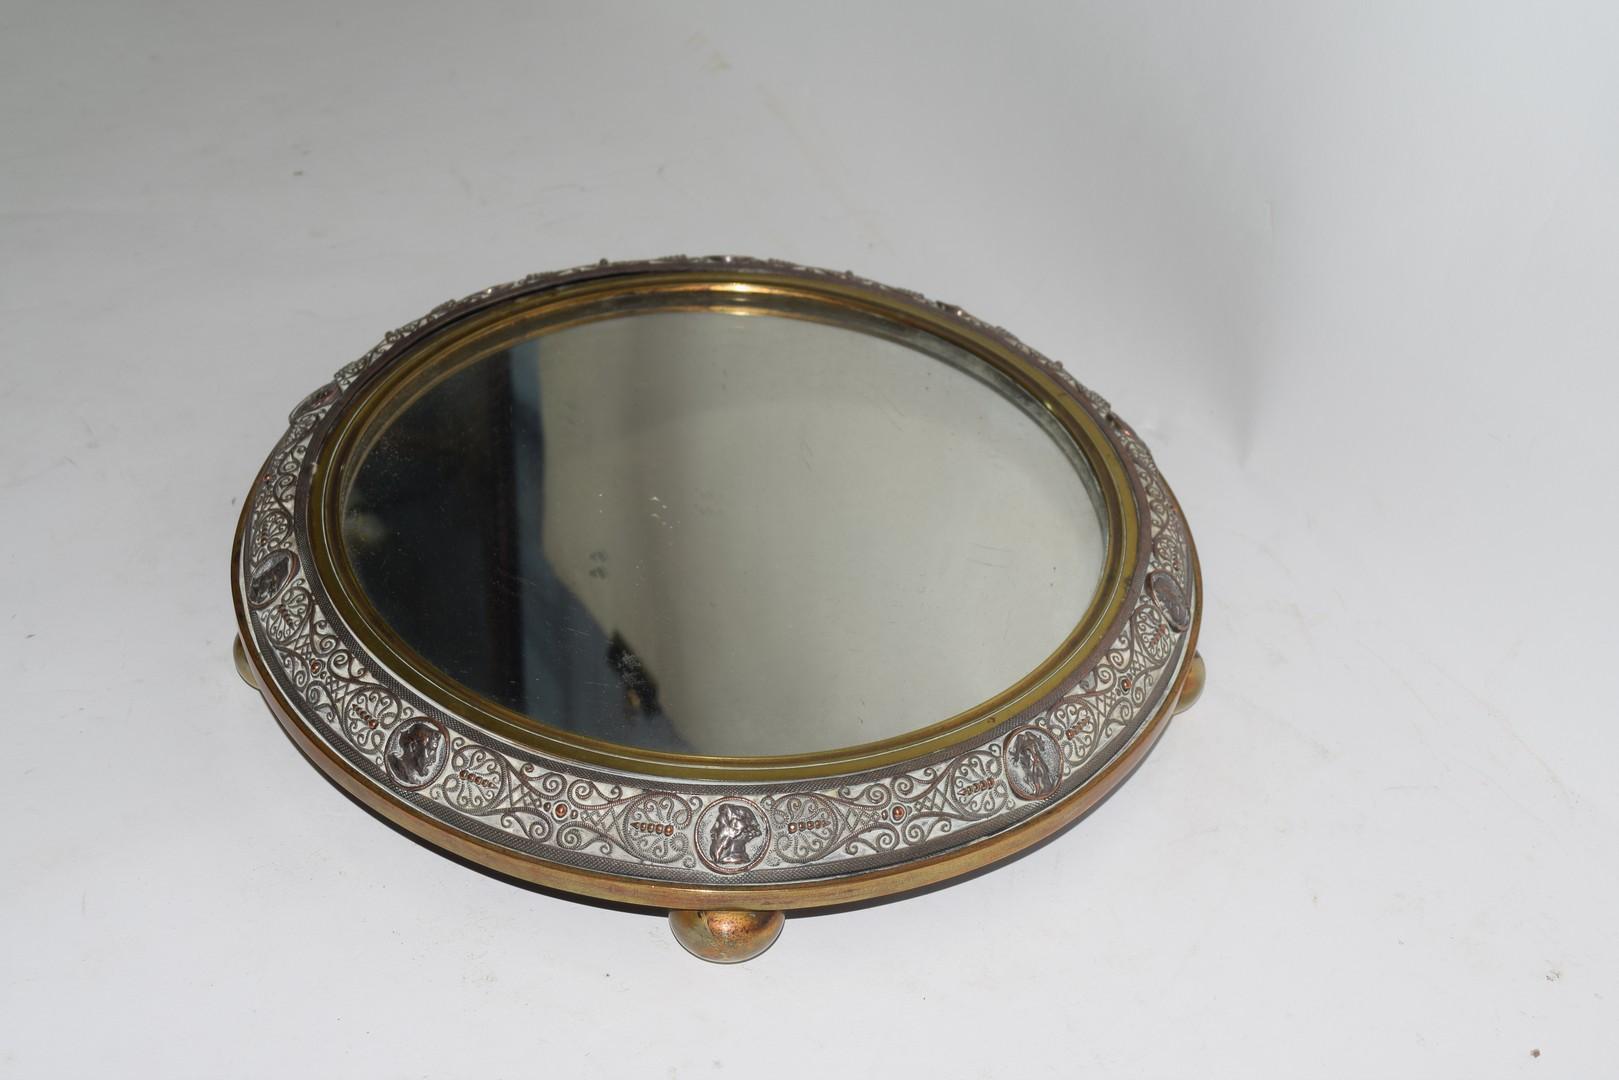 Victorian copper and brass mounted circular mirrored table stand decorated with figural and - Image 5 of 6